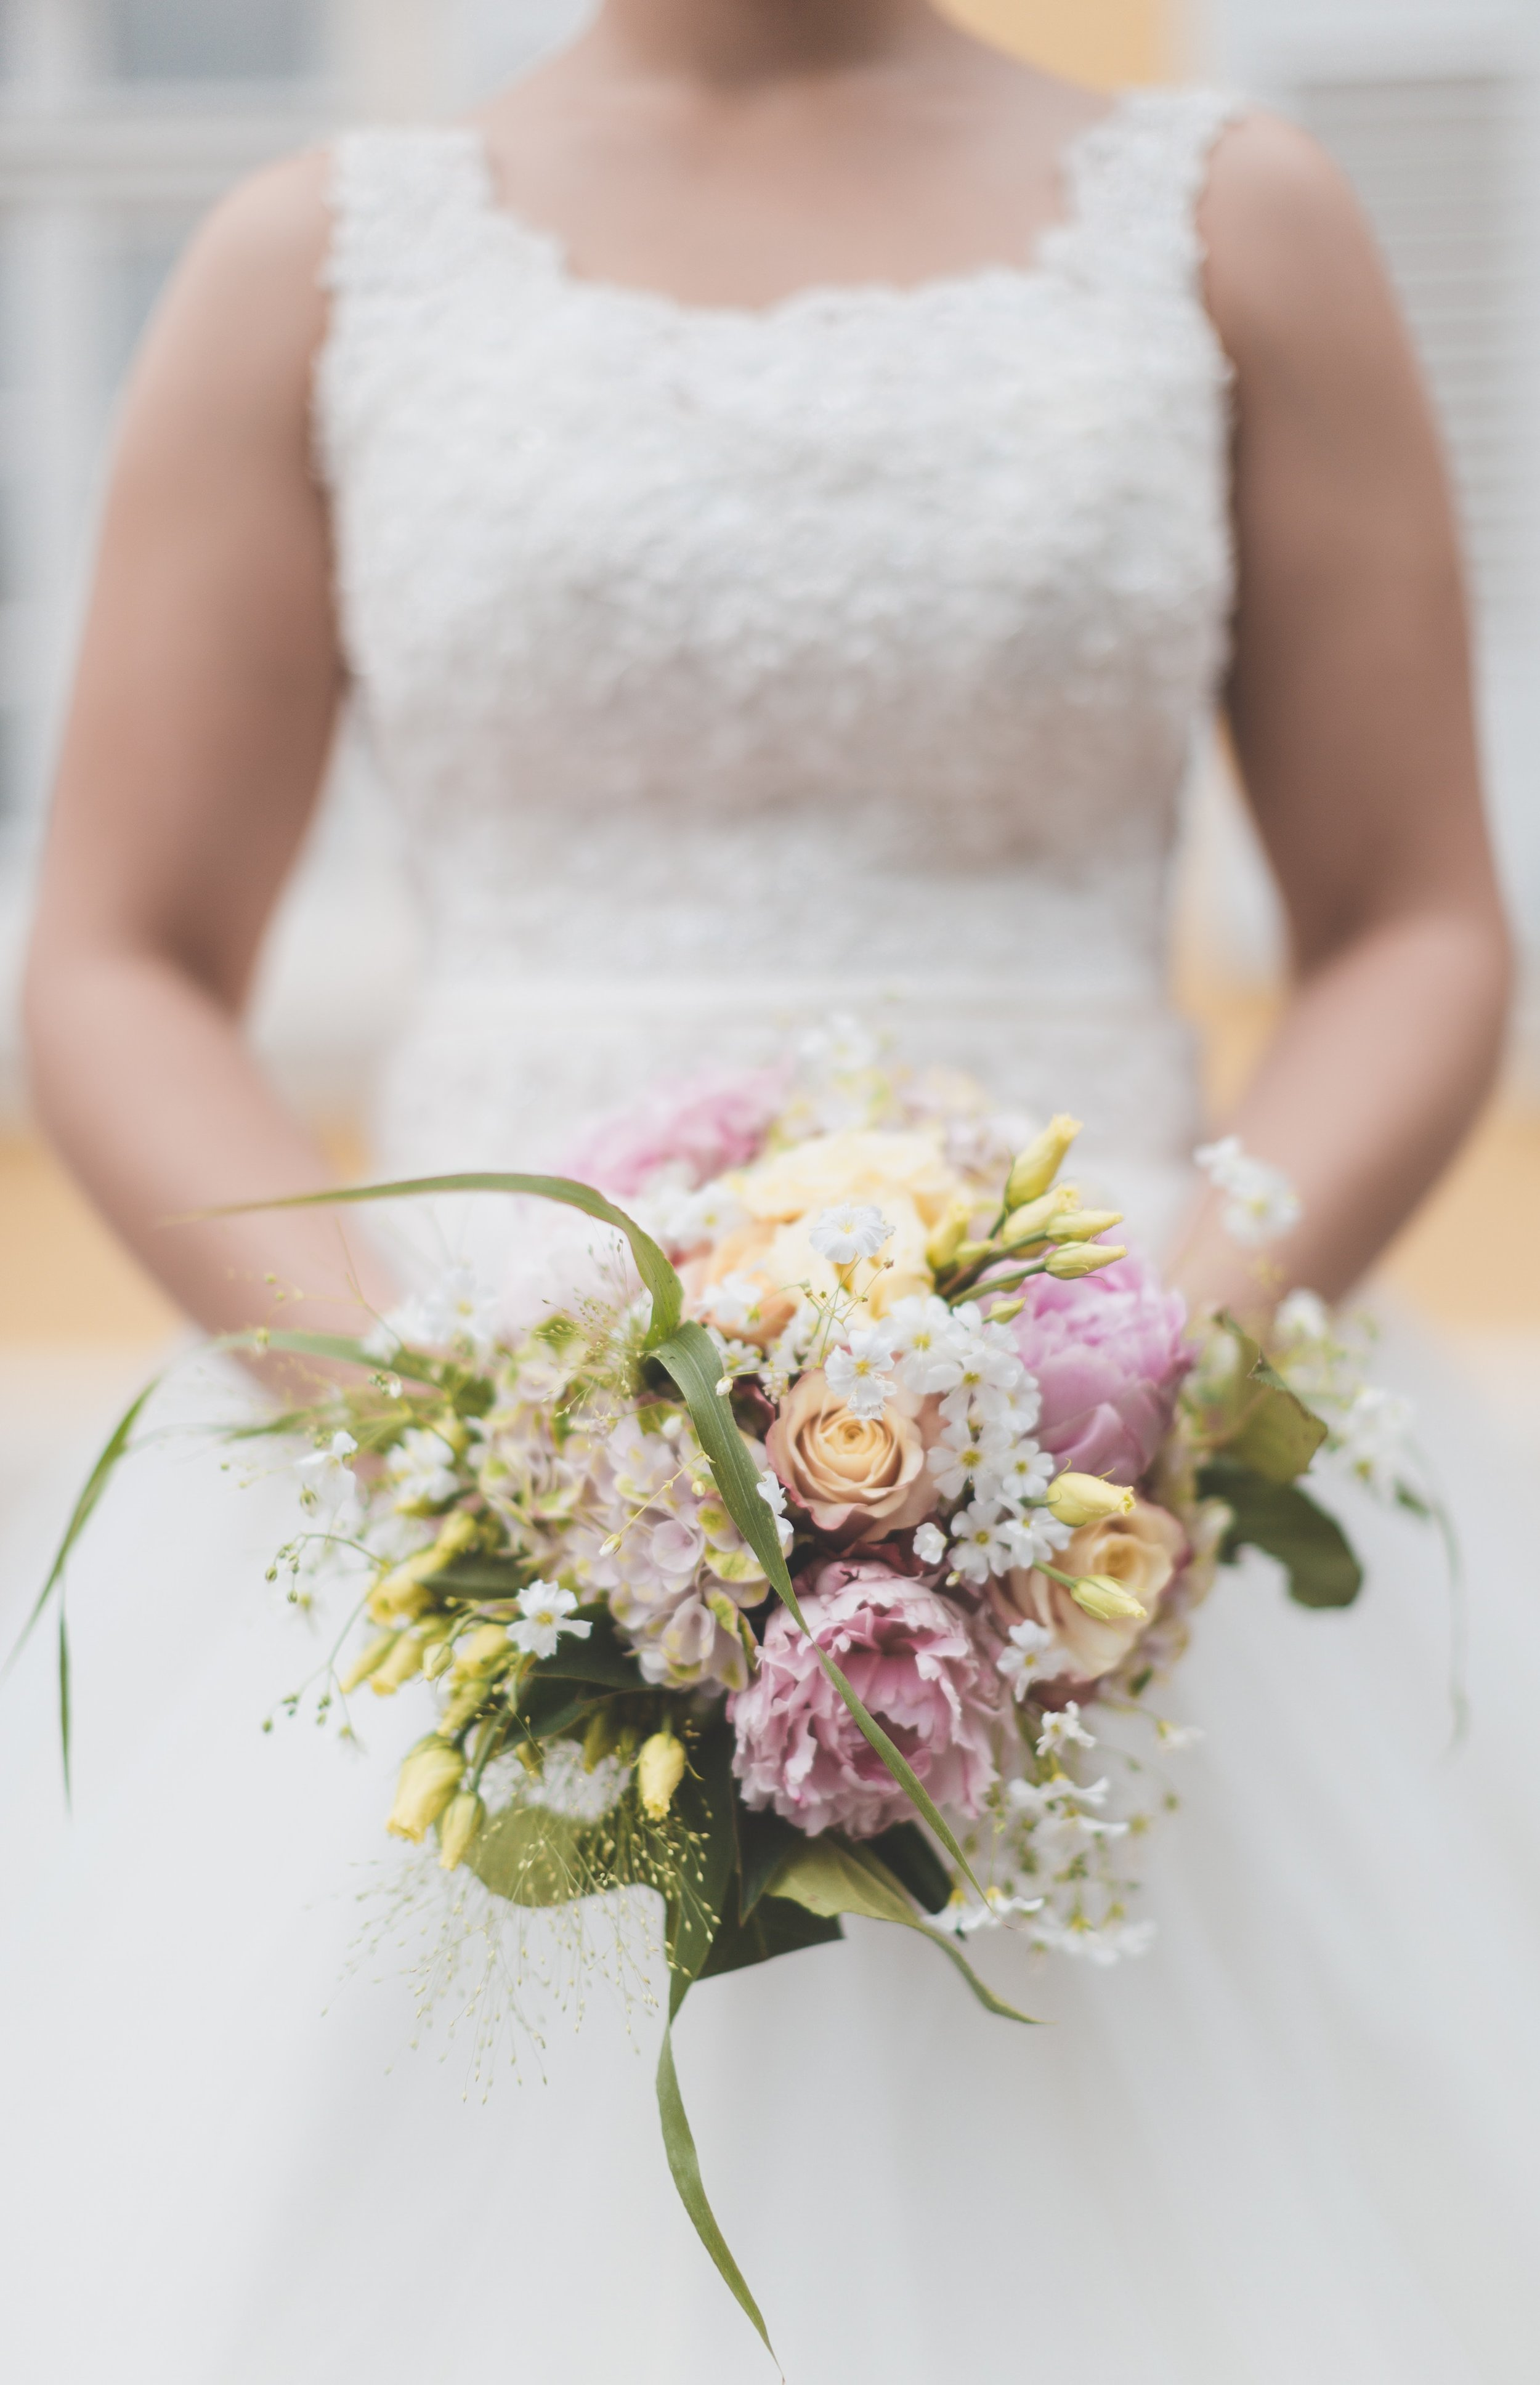 How to Look Your Best in Your Wedding Photos